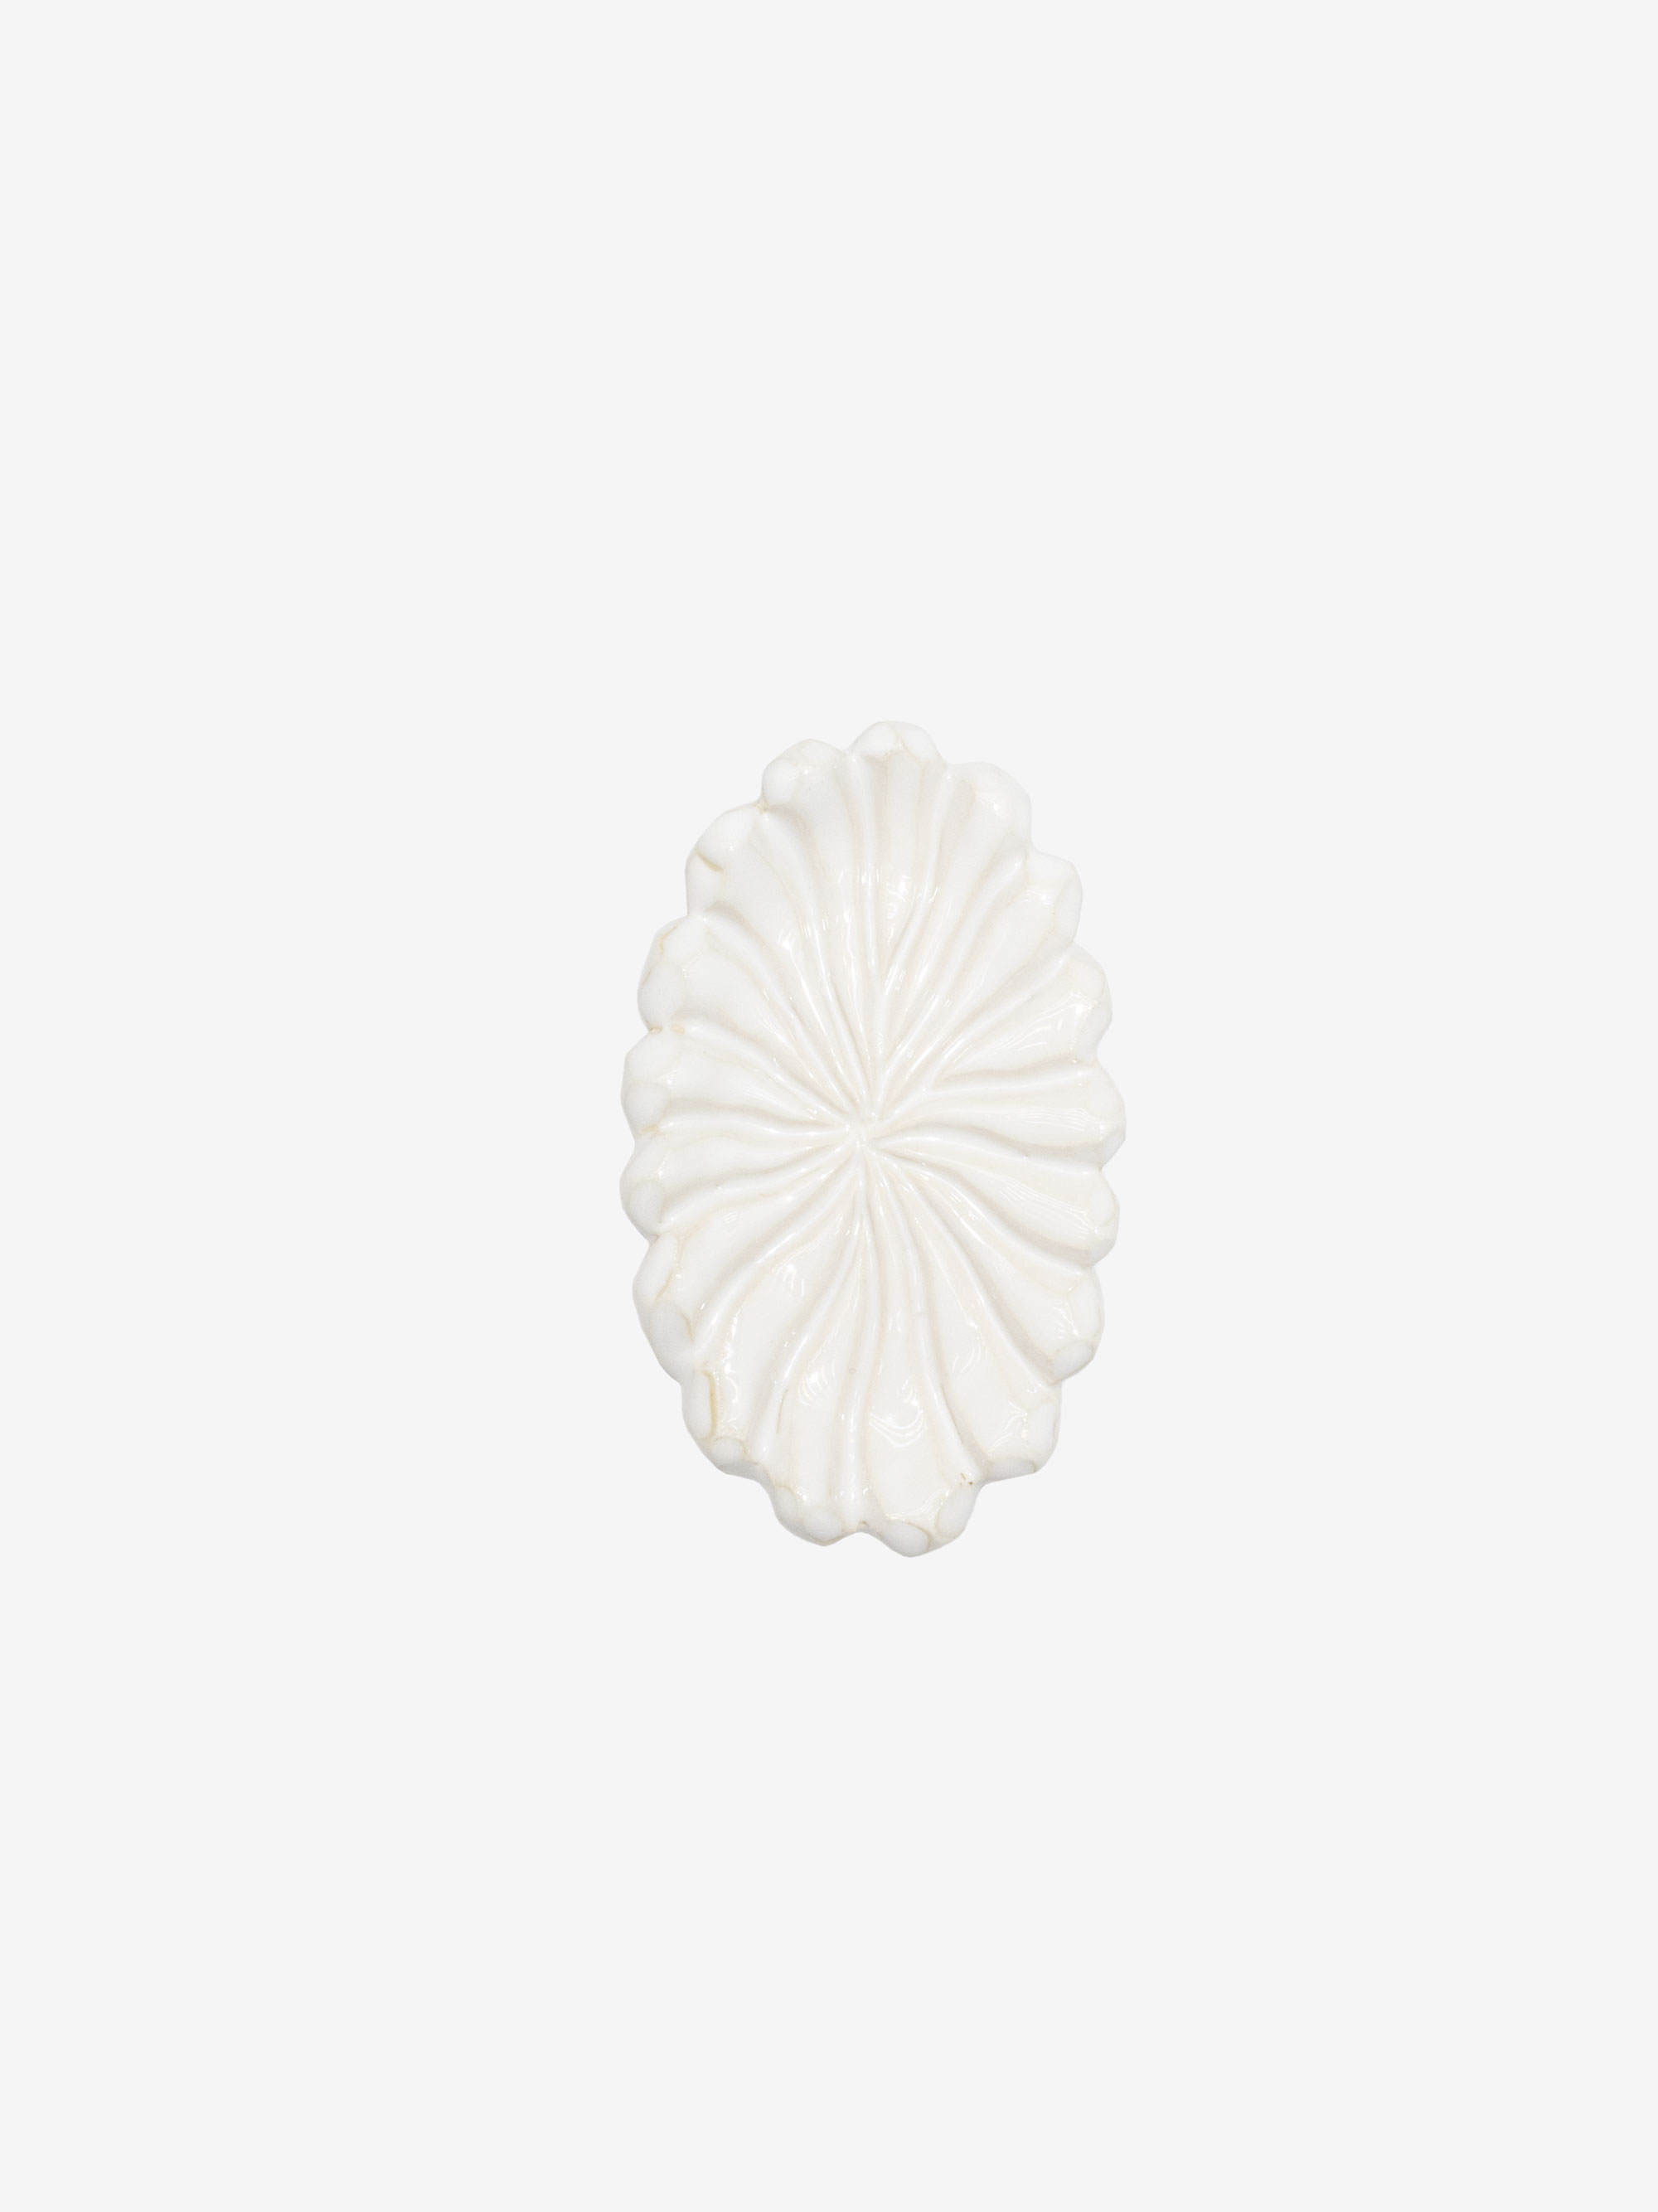 Sea Creature Tray Clod White